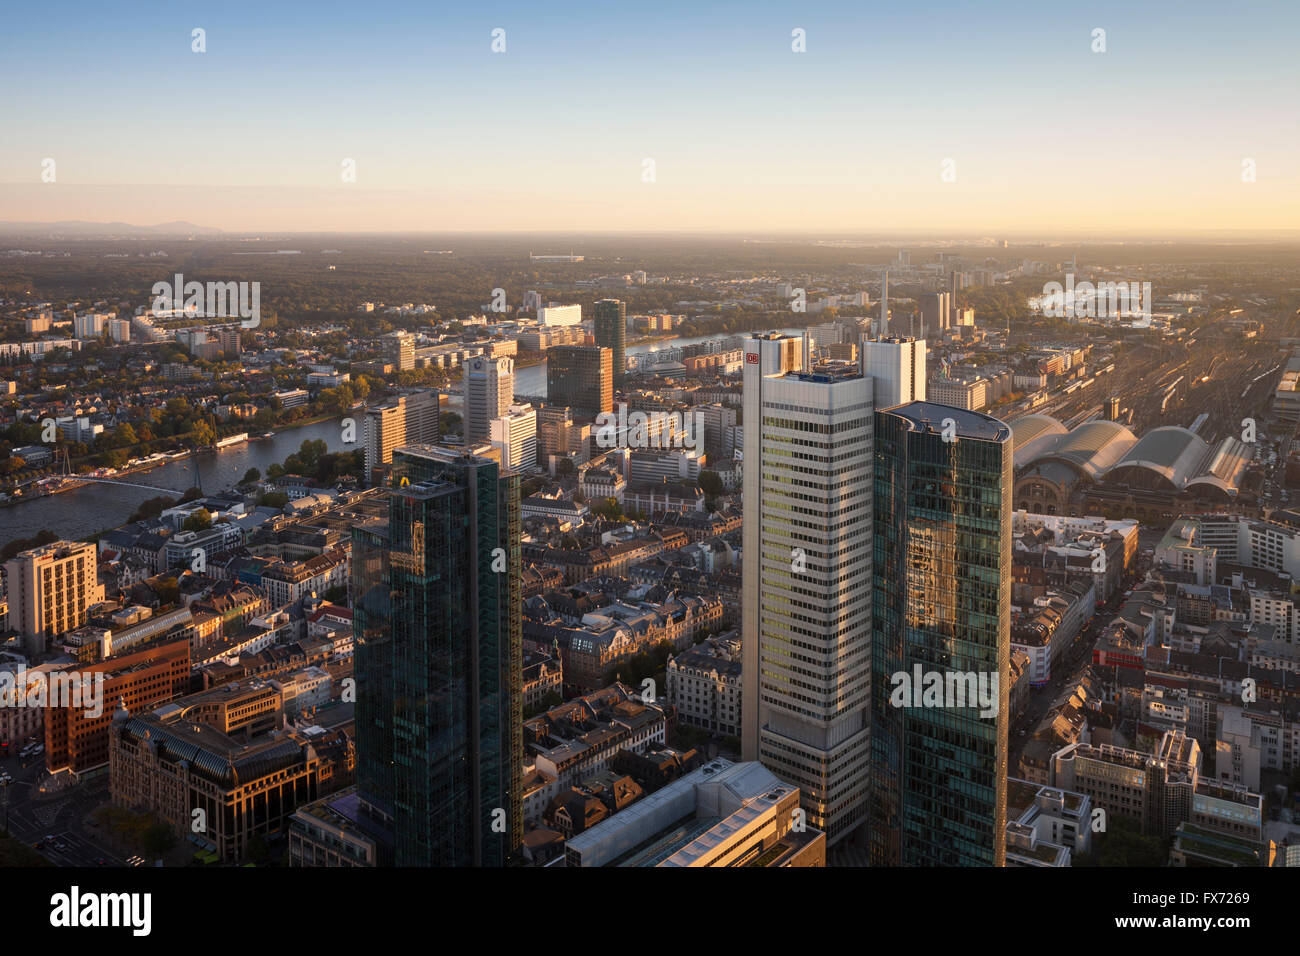 Cityscape with Gallileo and Silberturm skyscrapers, view from the Main Tower, Frankfurt, Hesse, Germany Stock Photo